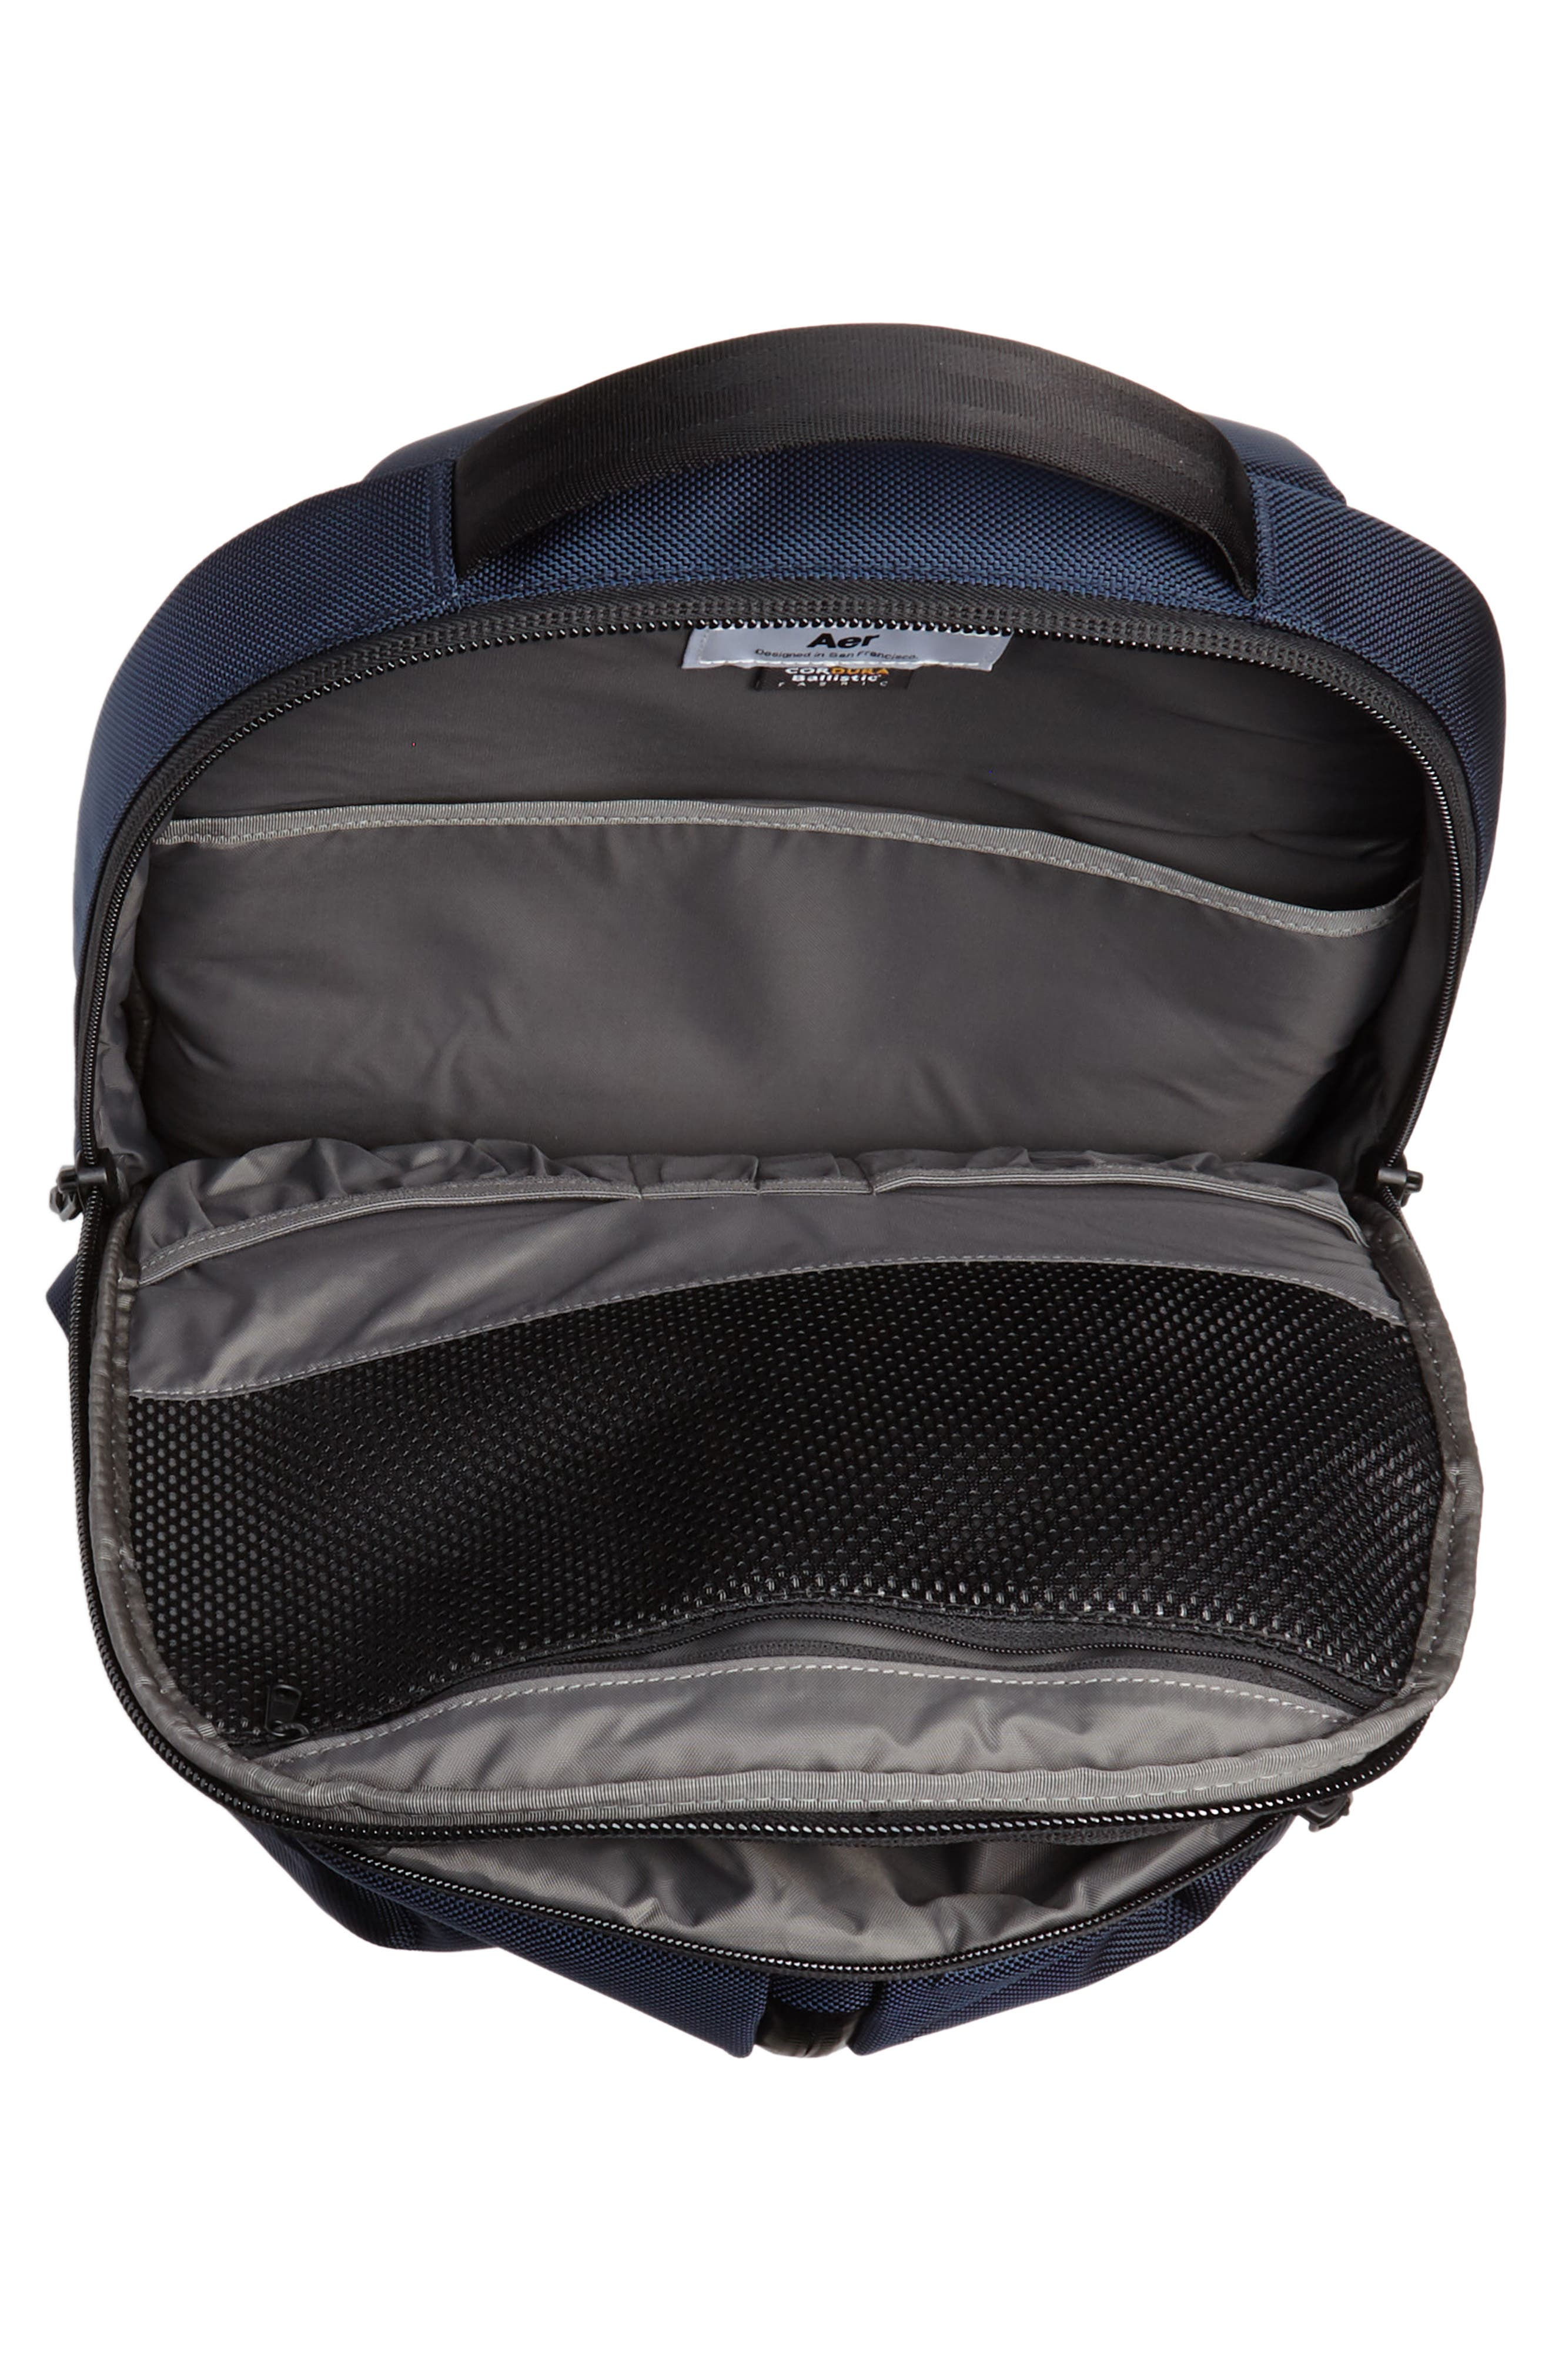 Fit Pack 2 Backpack,                             Alternate thumbnail 4, color,                             Navy